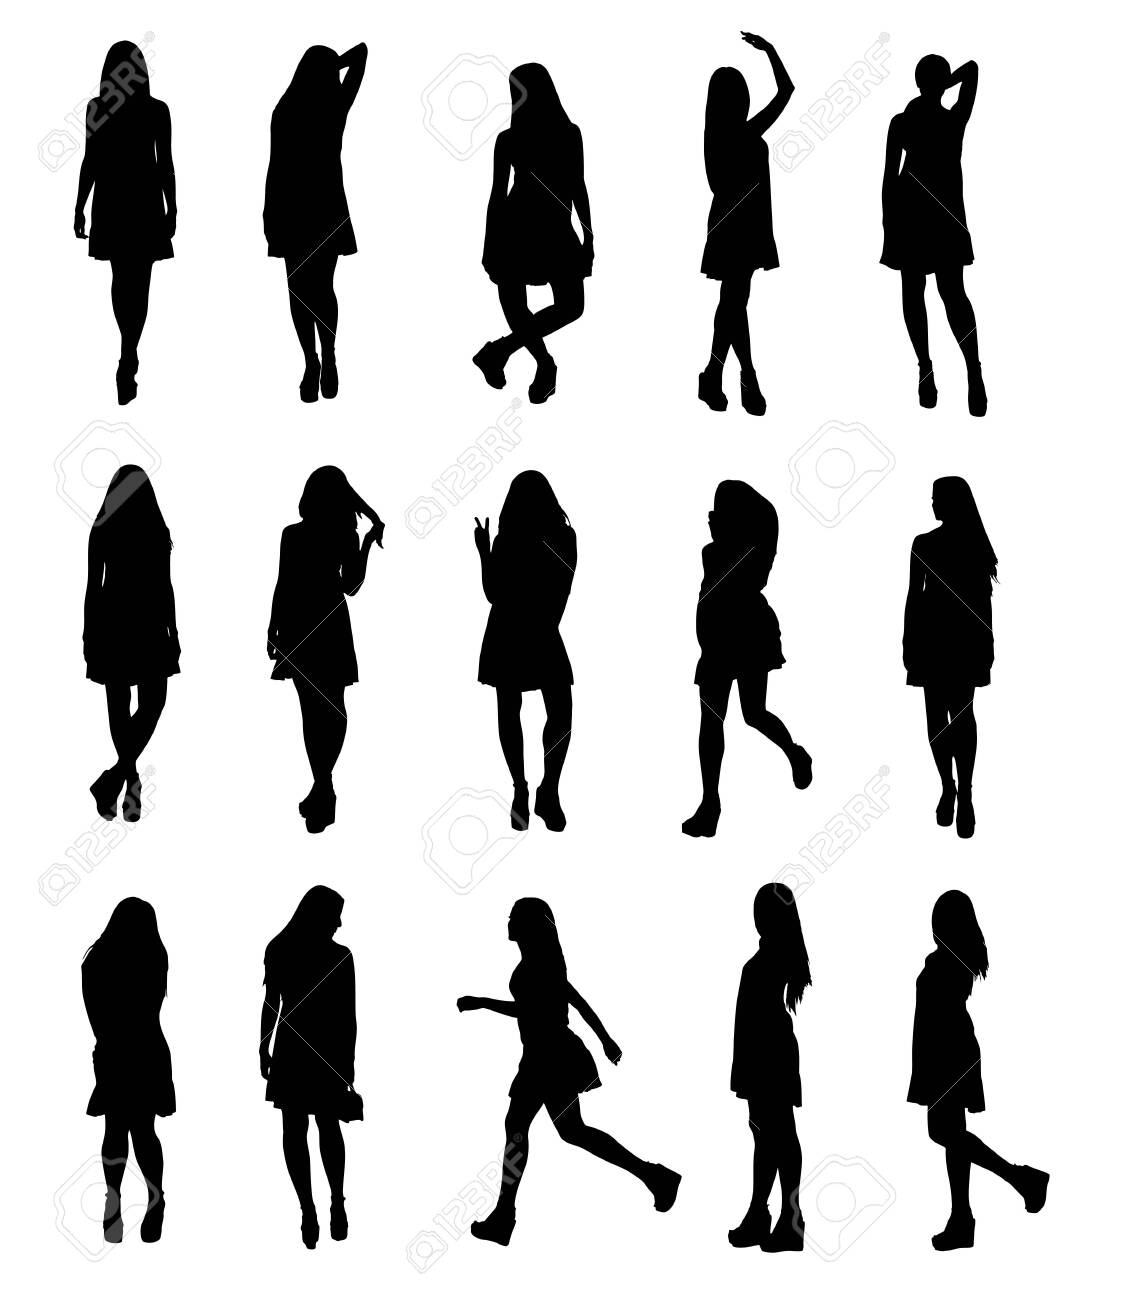 Silhouettes set of young fashion model woman in airy fluttering dress full body. Easy editable layered vector illustration. - 151346279